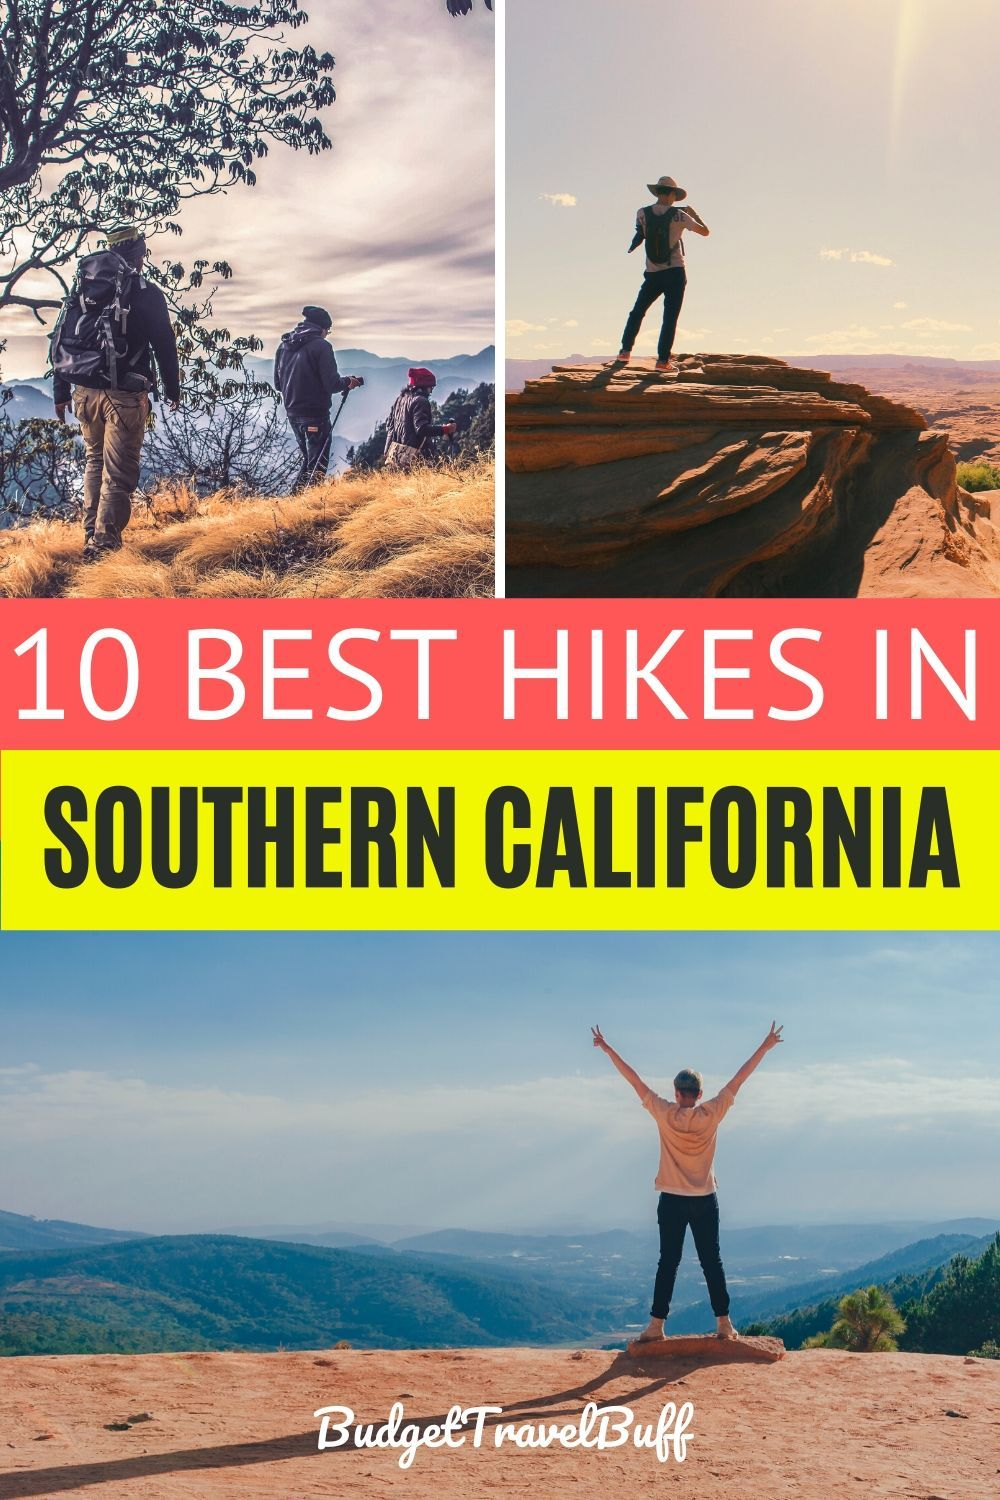 10 Best Hikes In Southern California Budgettravelbuff Southern California Hikes Best Hikes California Travel